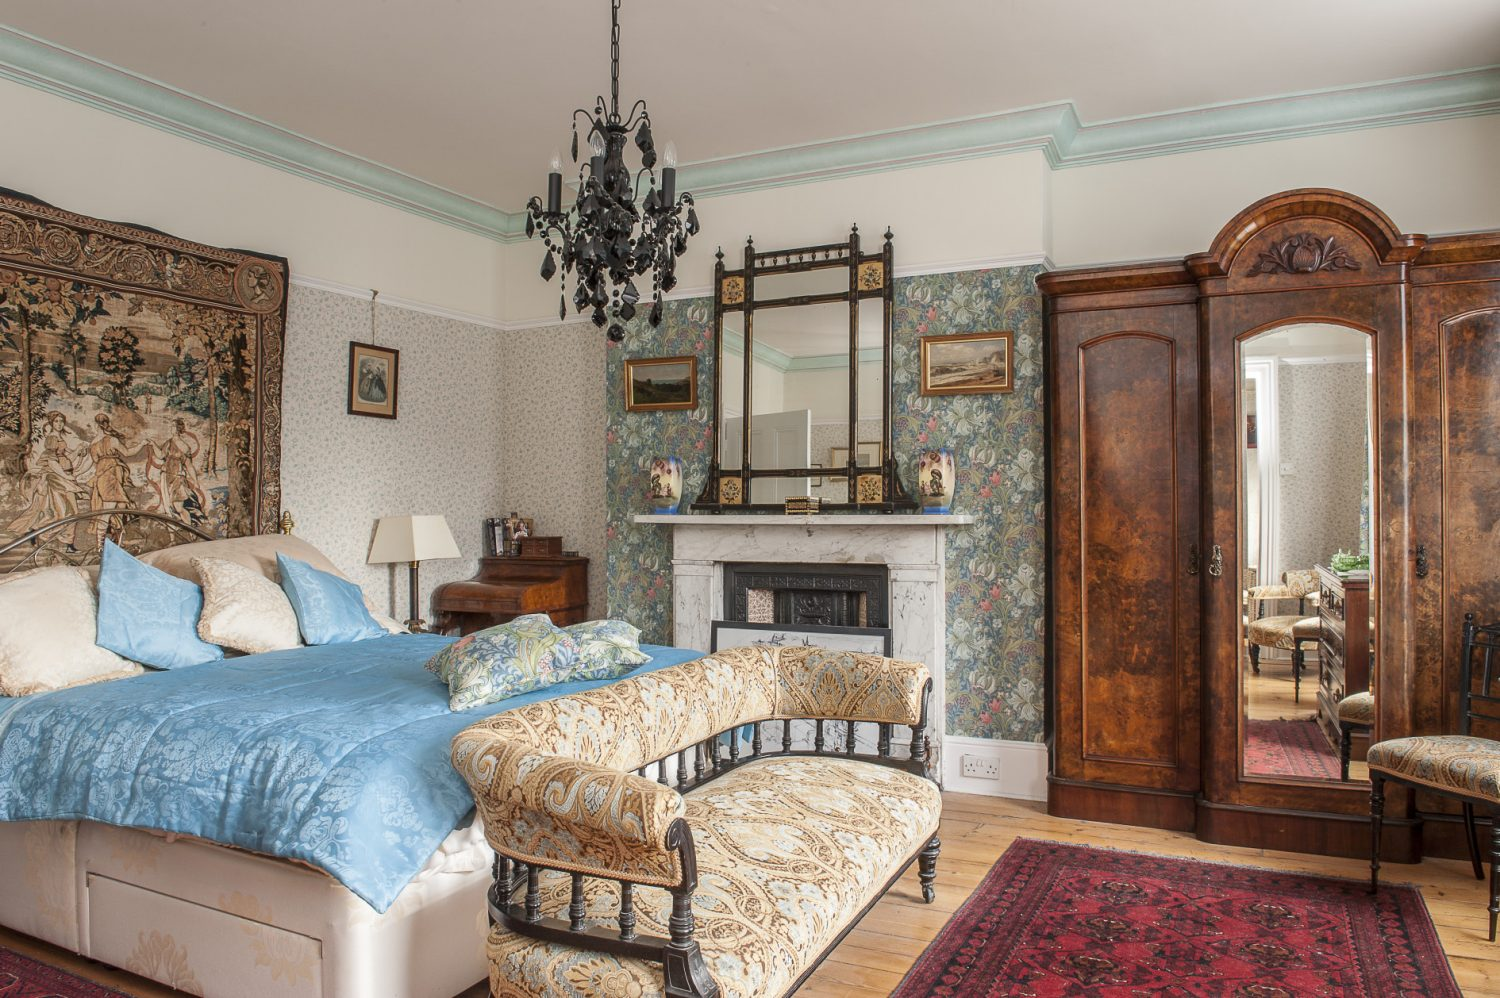 Ken and Irene's own bedroom has been modernised with a black glass chandelier which ties together the dark woods of the furniture with the contrasting pale florals of the soft furnishings and wallpaper